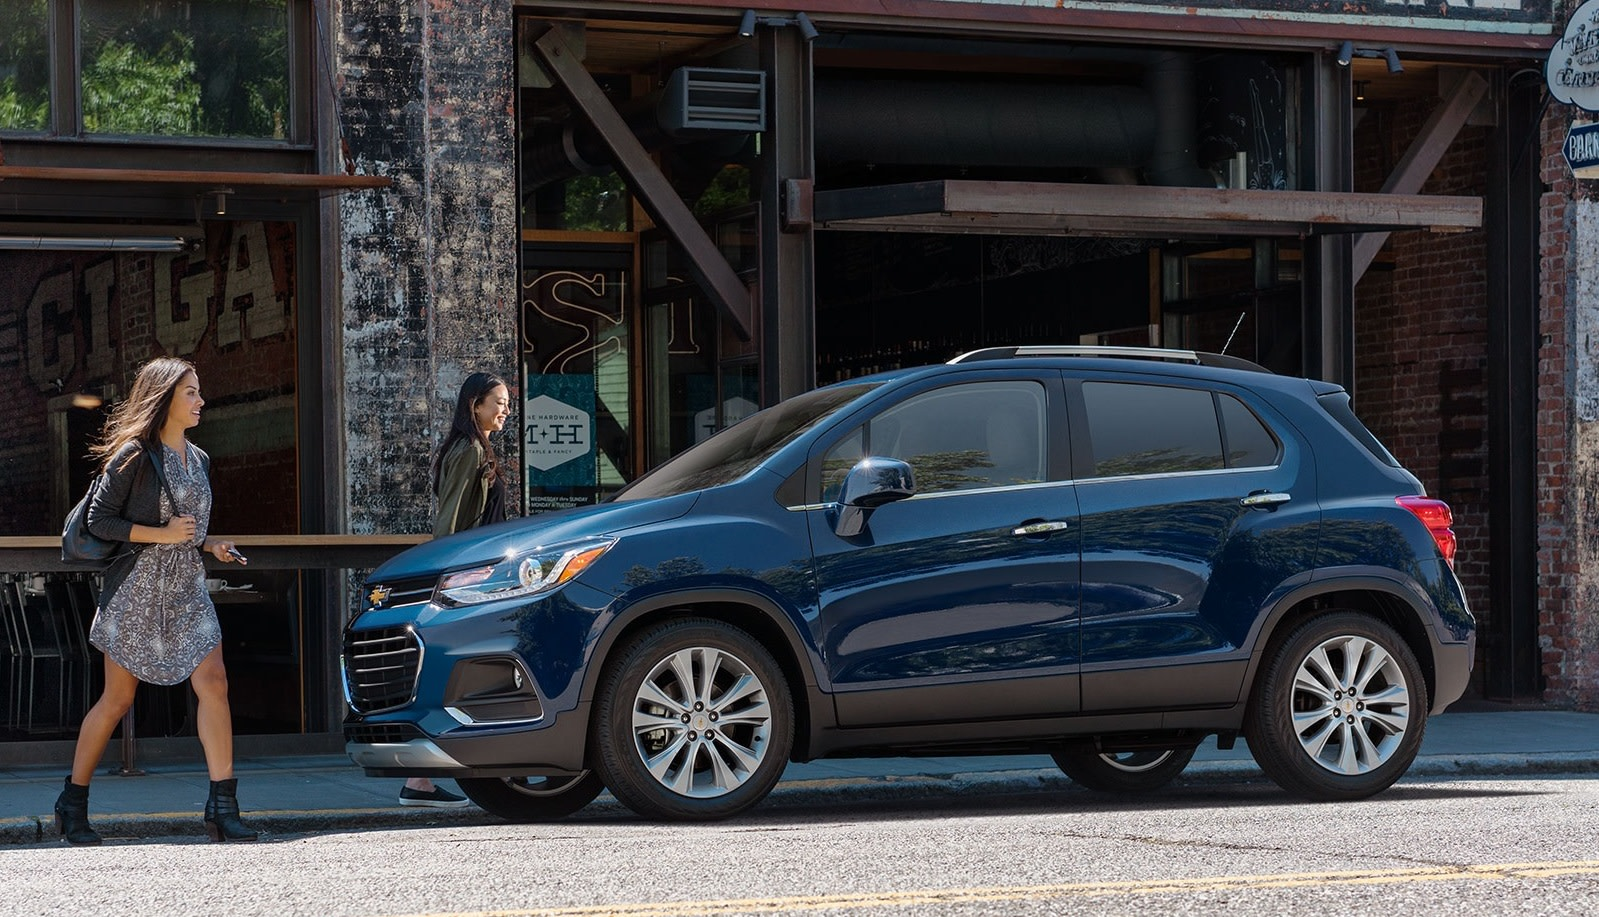 2020 Chevrolet Trax for Sale near Homewood, IL